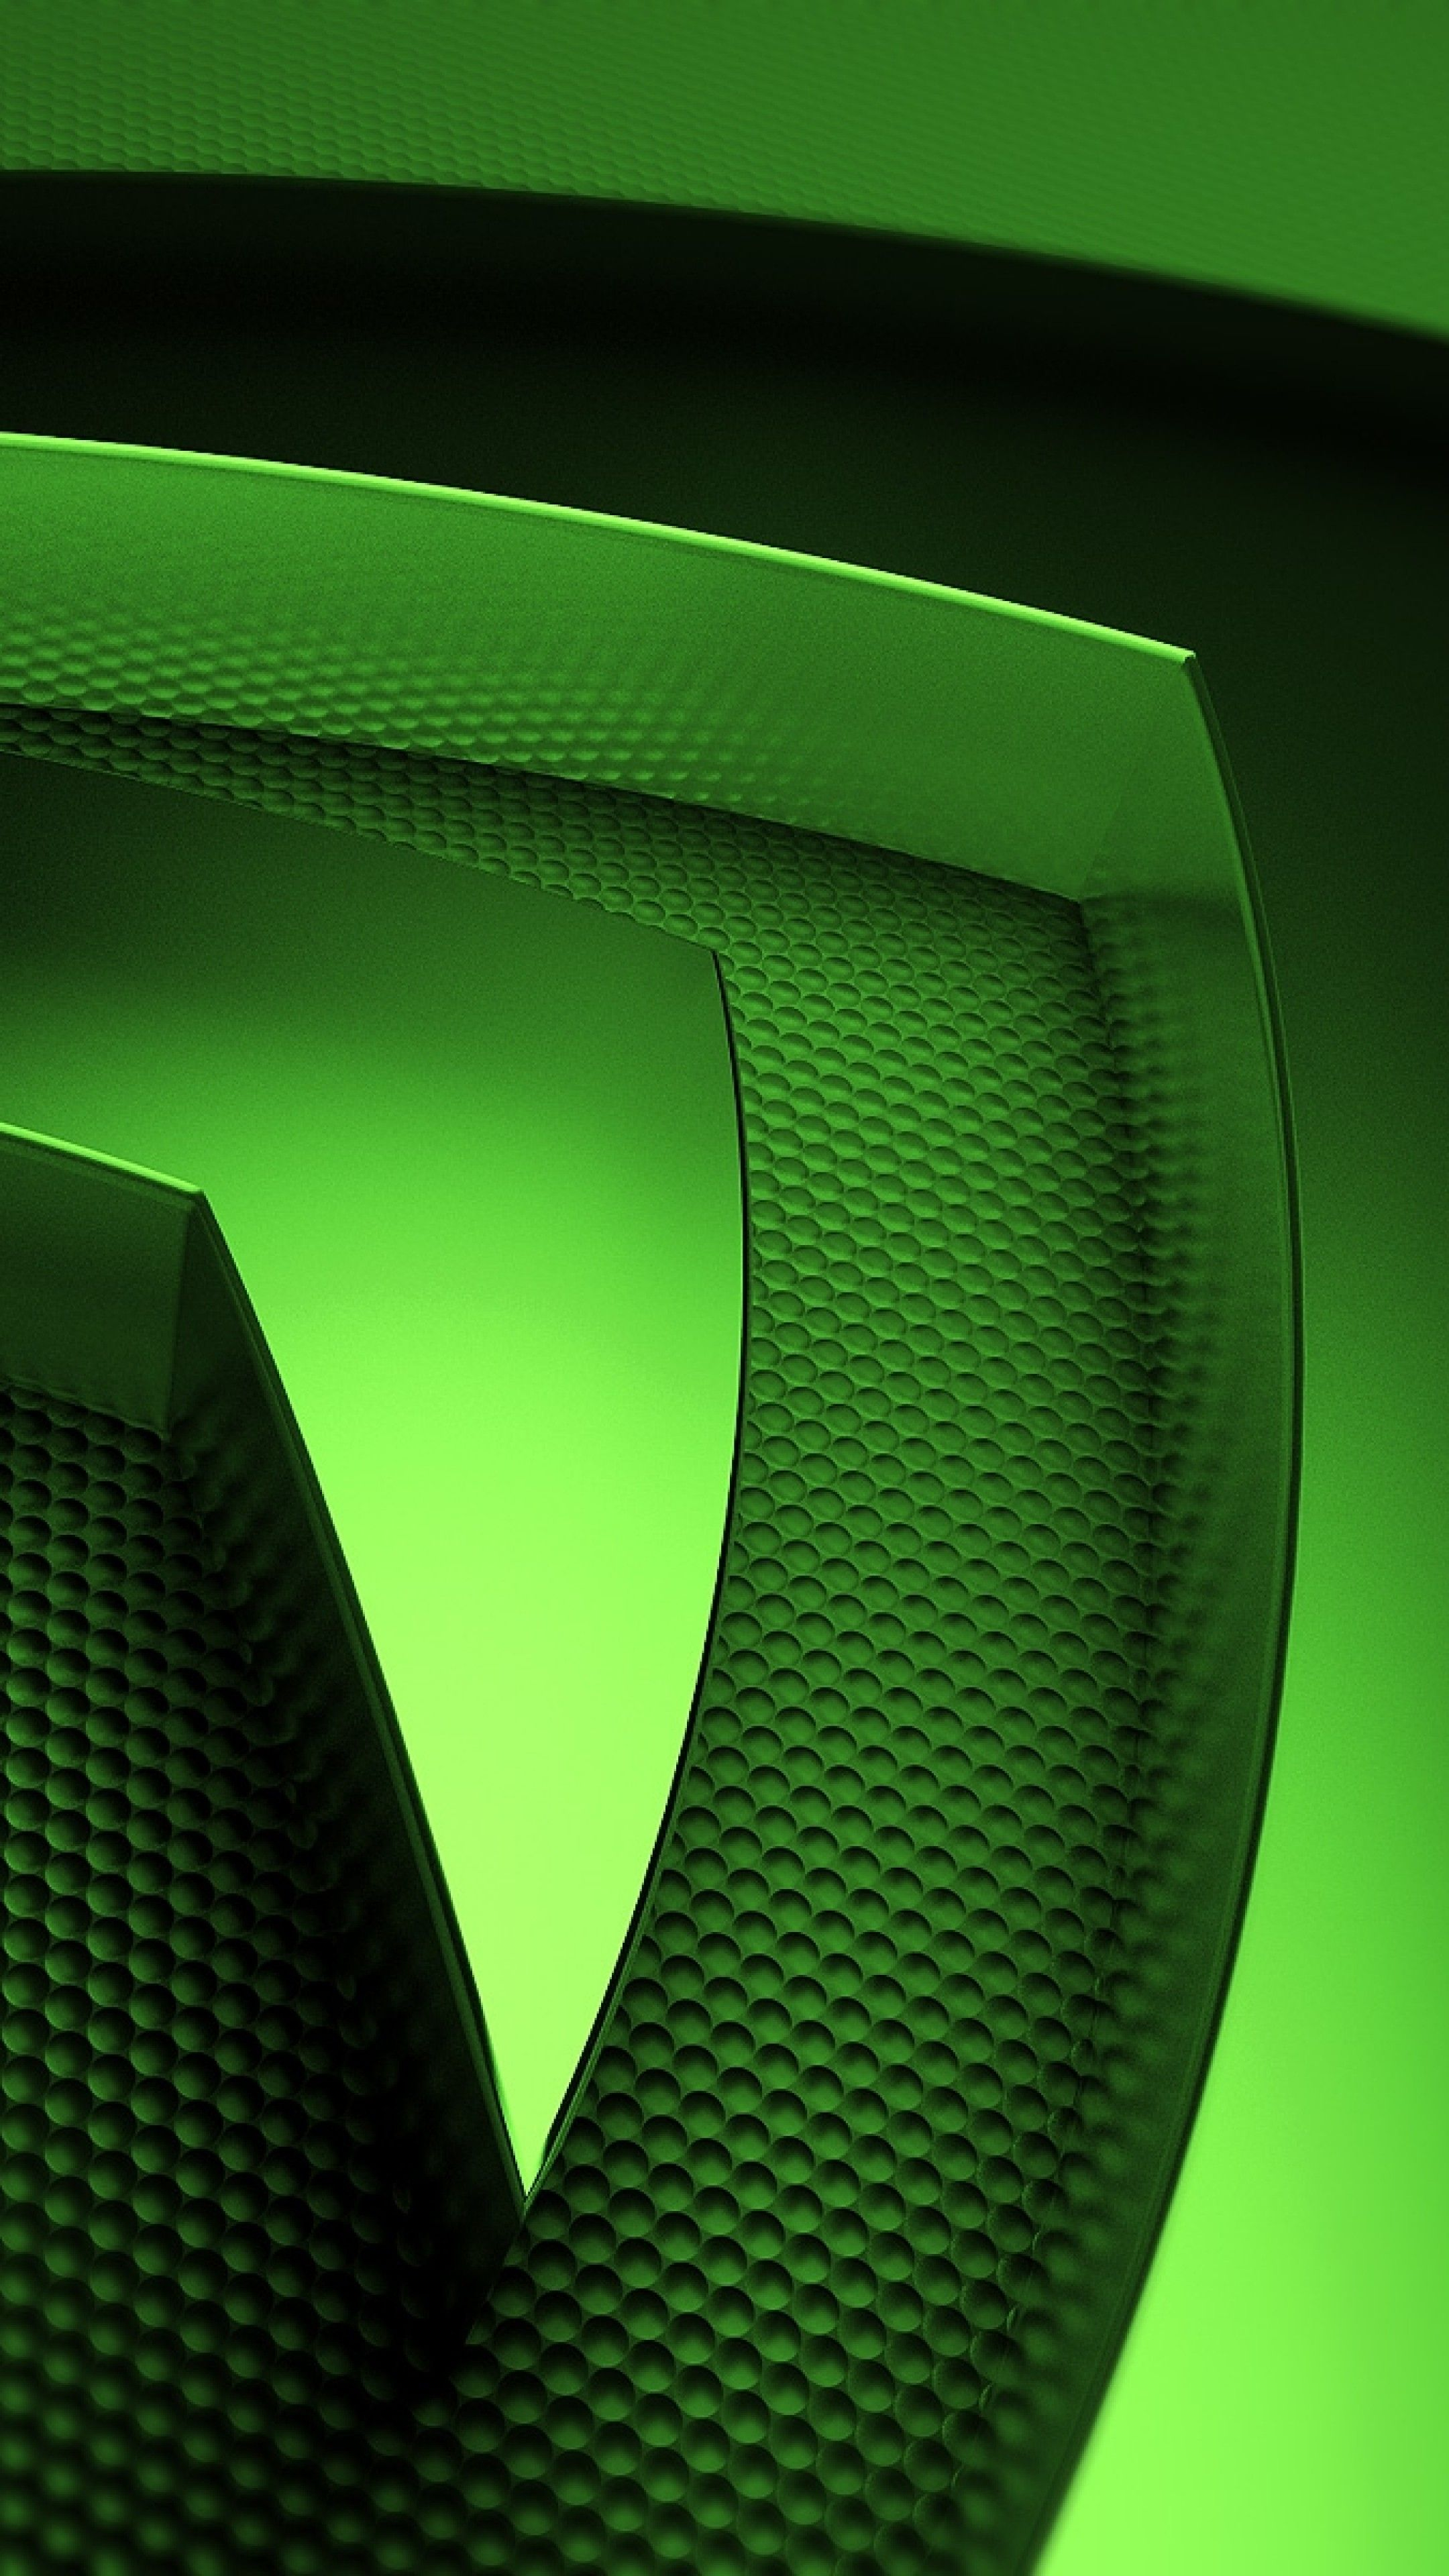 2160x3840 2160x3840 Wallpaper Nvidia Green Symbol Cool Wallpapers For Phones Cellphone Wallpaper Backgrounds Phone Wallpapers